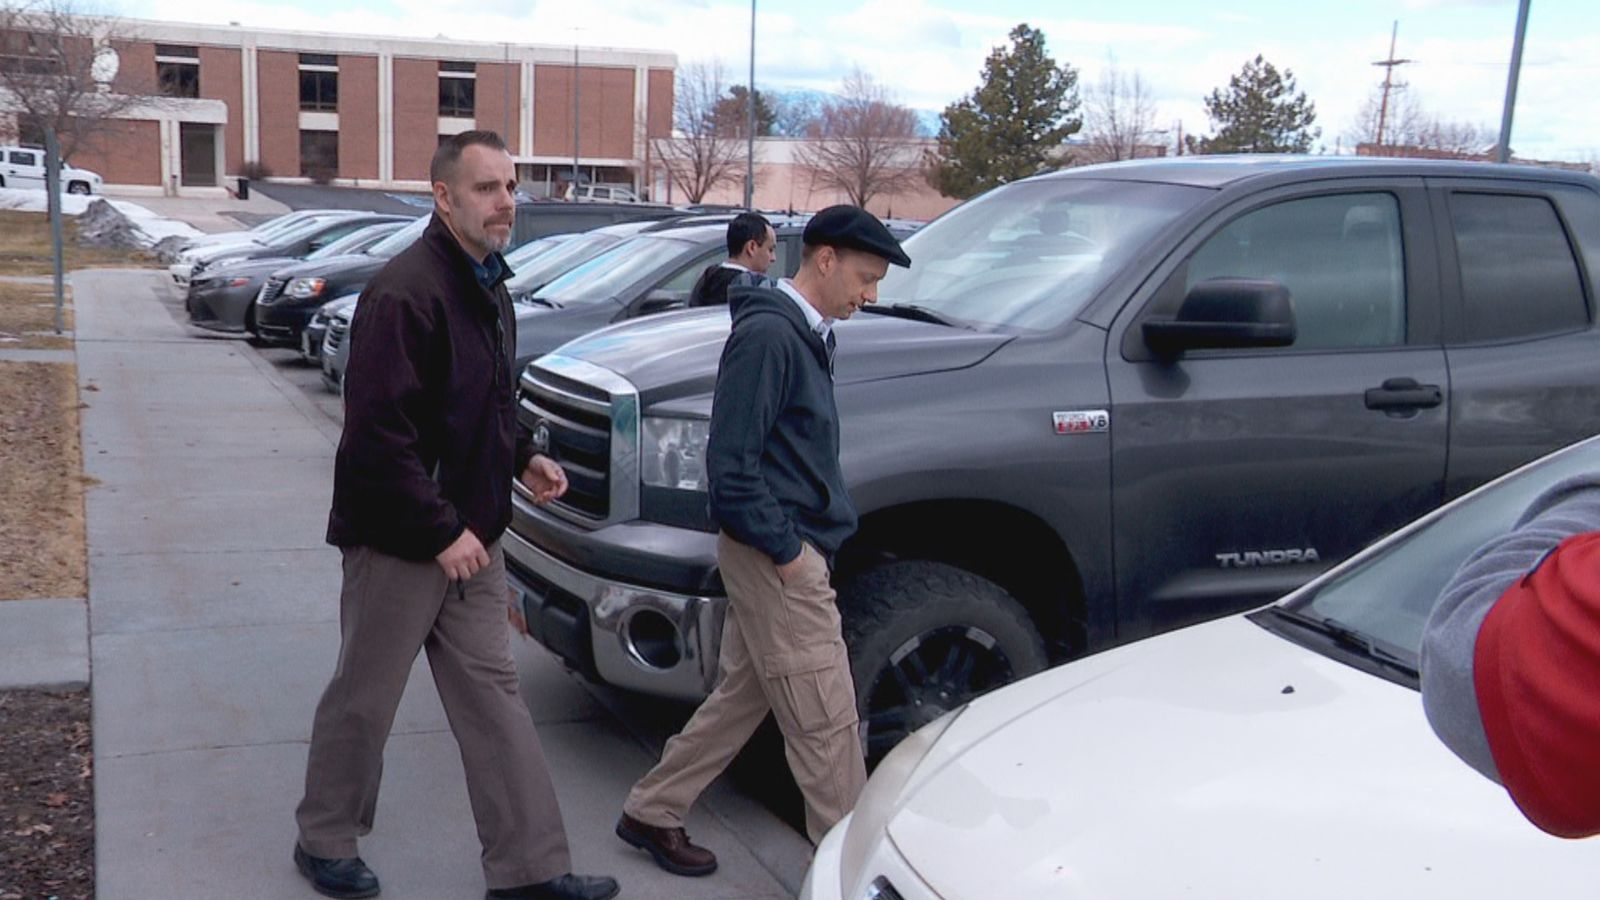 CJ Haynie's father Colin Haynie was seen leaving district court in Tooele County on Monday, Jan. 27, 2020 after his son's first court hearing. CJ Haynie is accused of the murders of his mother and three younger siblings, as well as the attempted murder of his father. (Jeremy Castellano / KUTV)